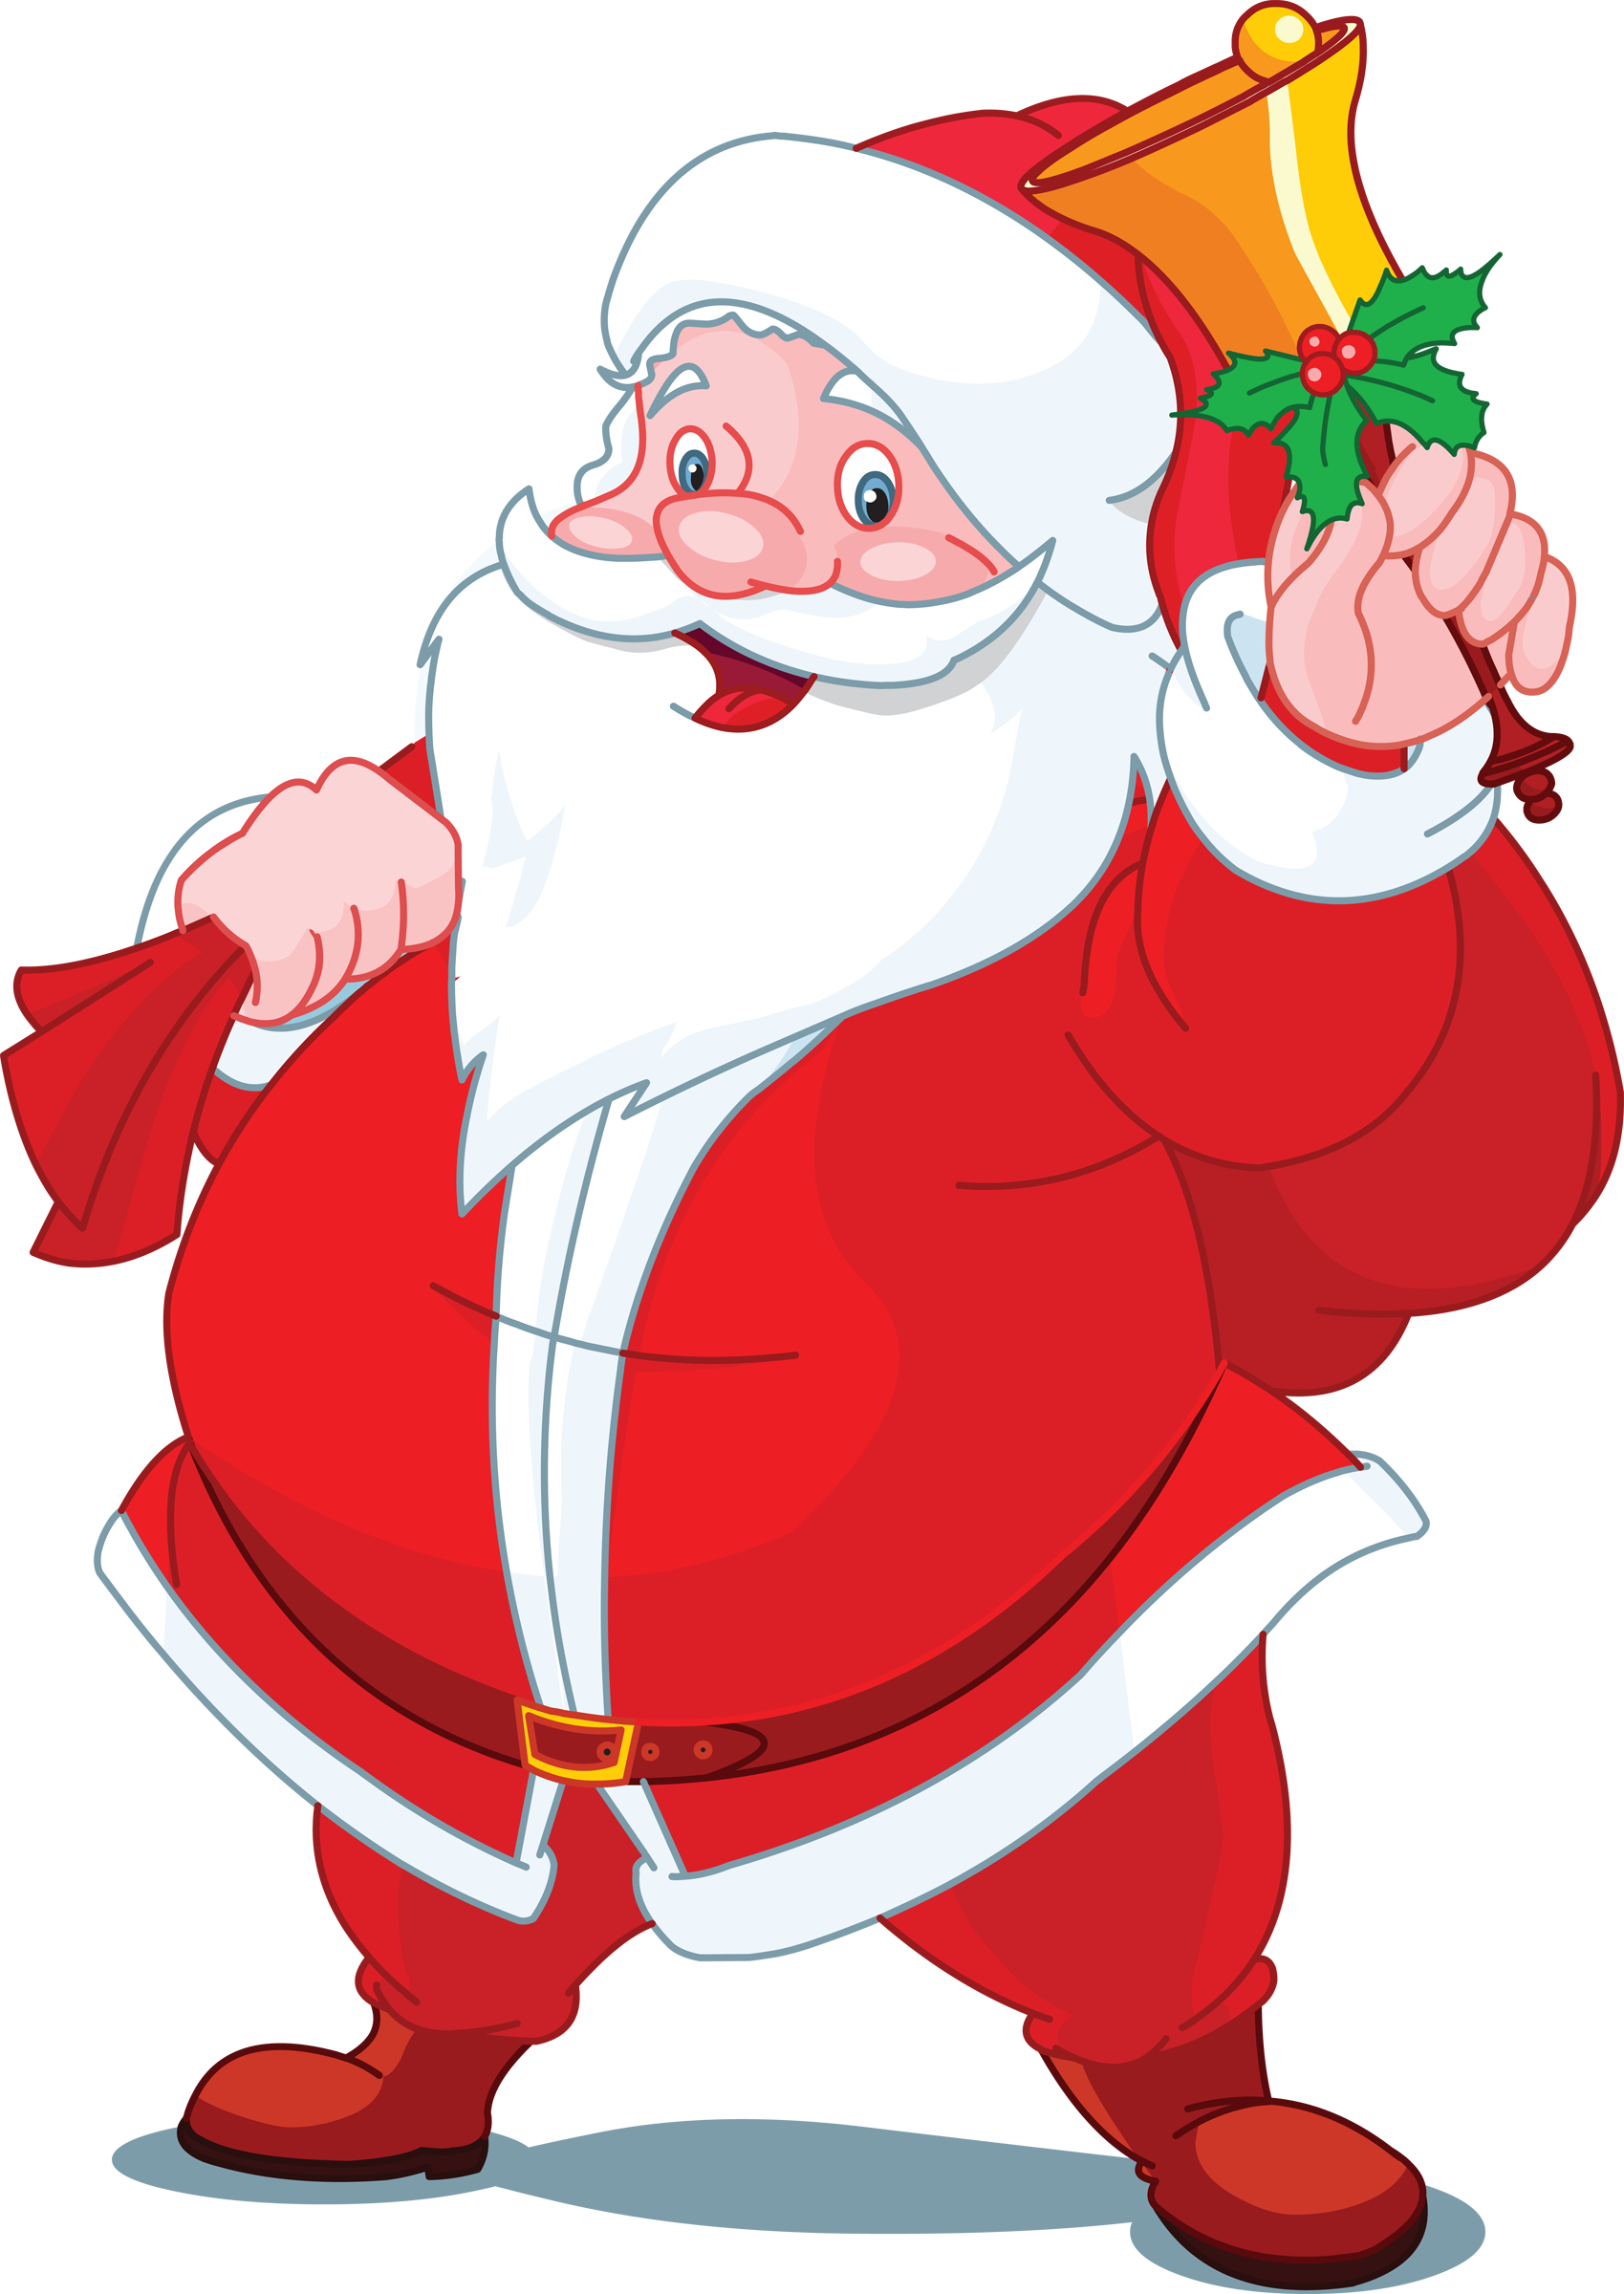 transparent Claus clipart png. Santa transparent images all.